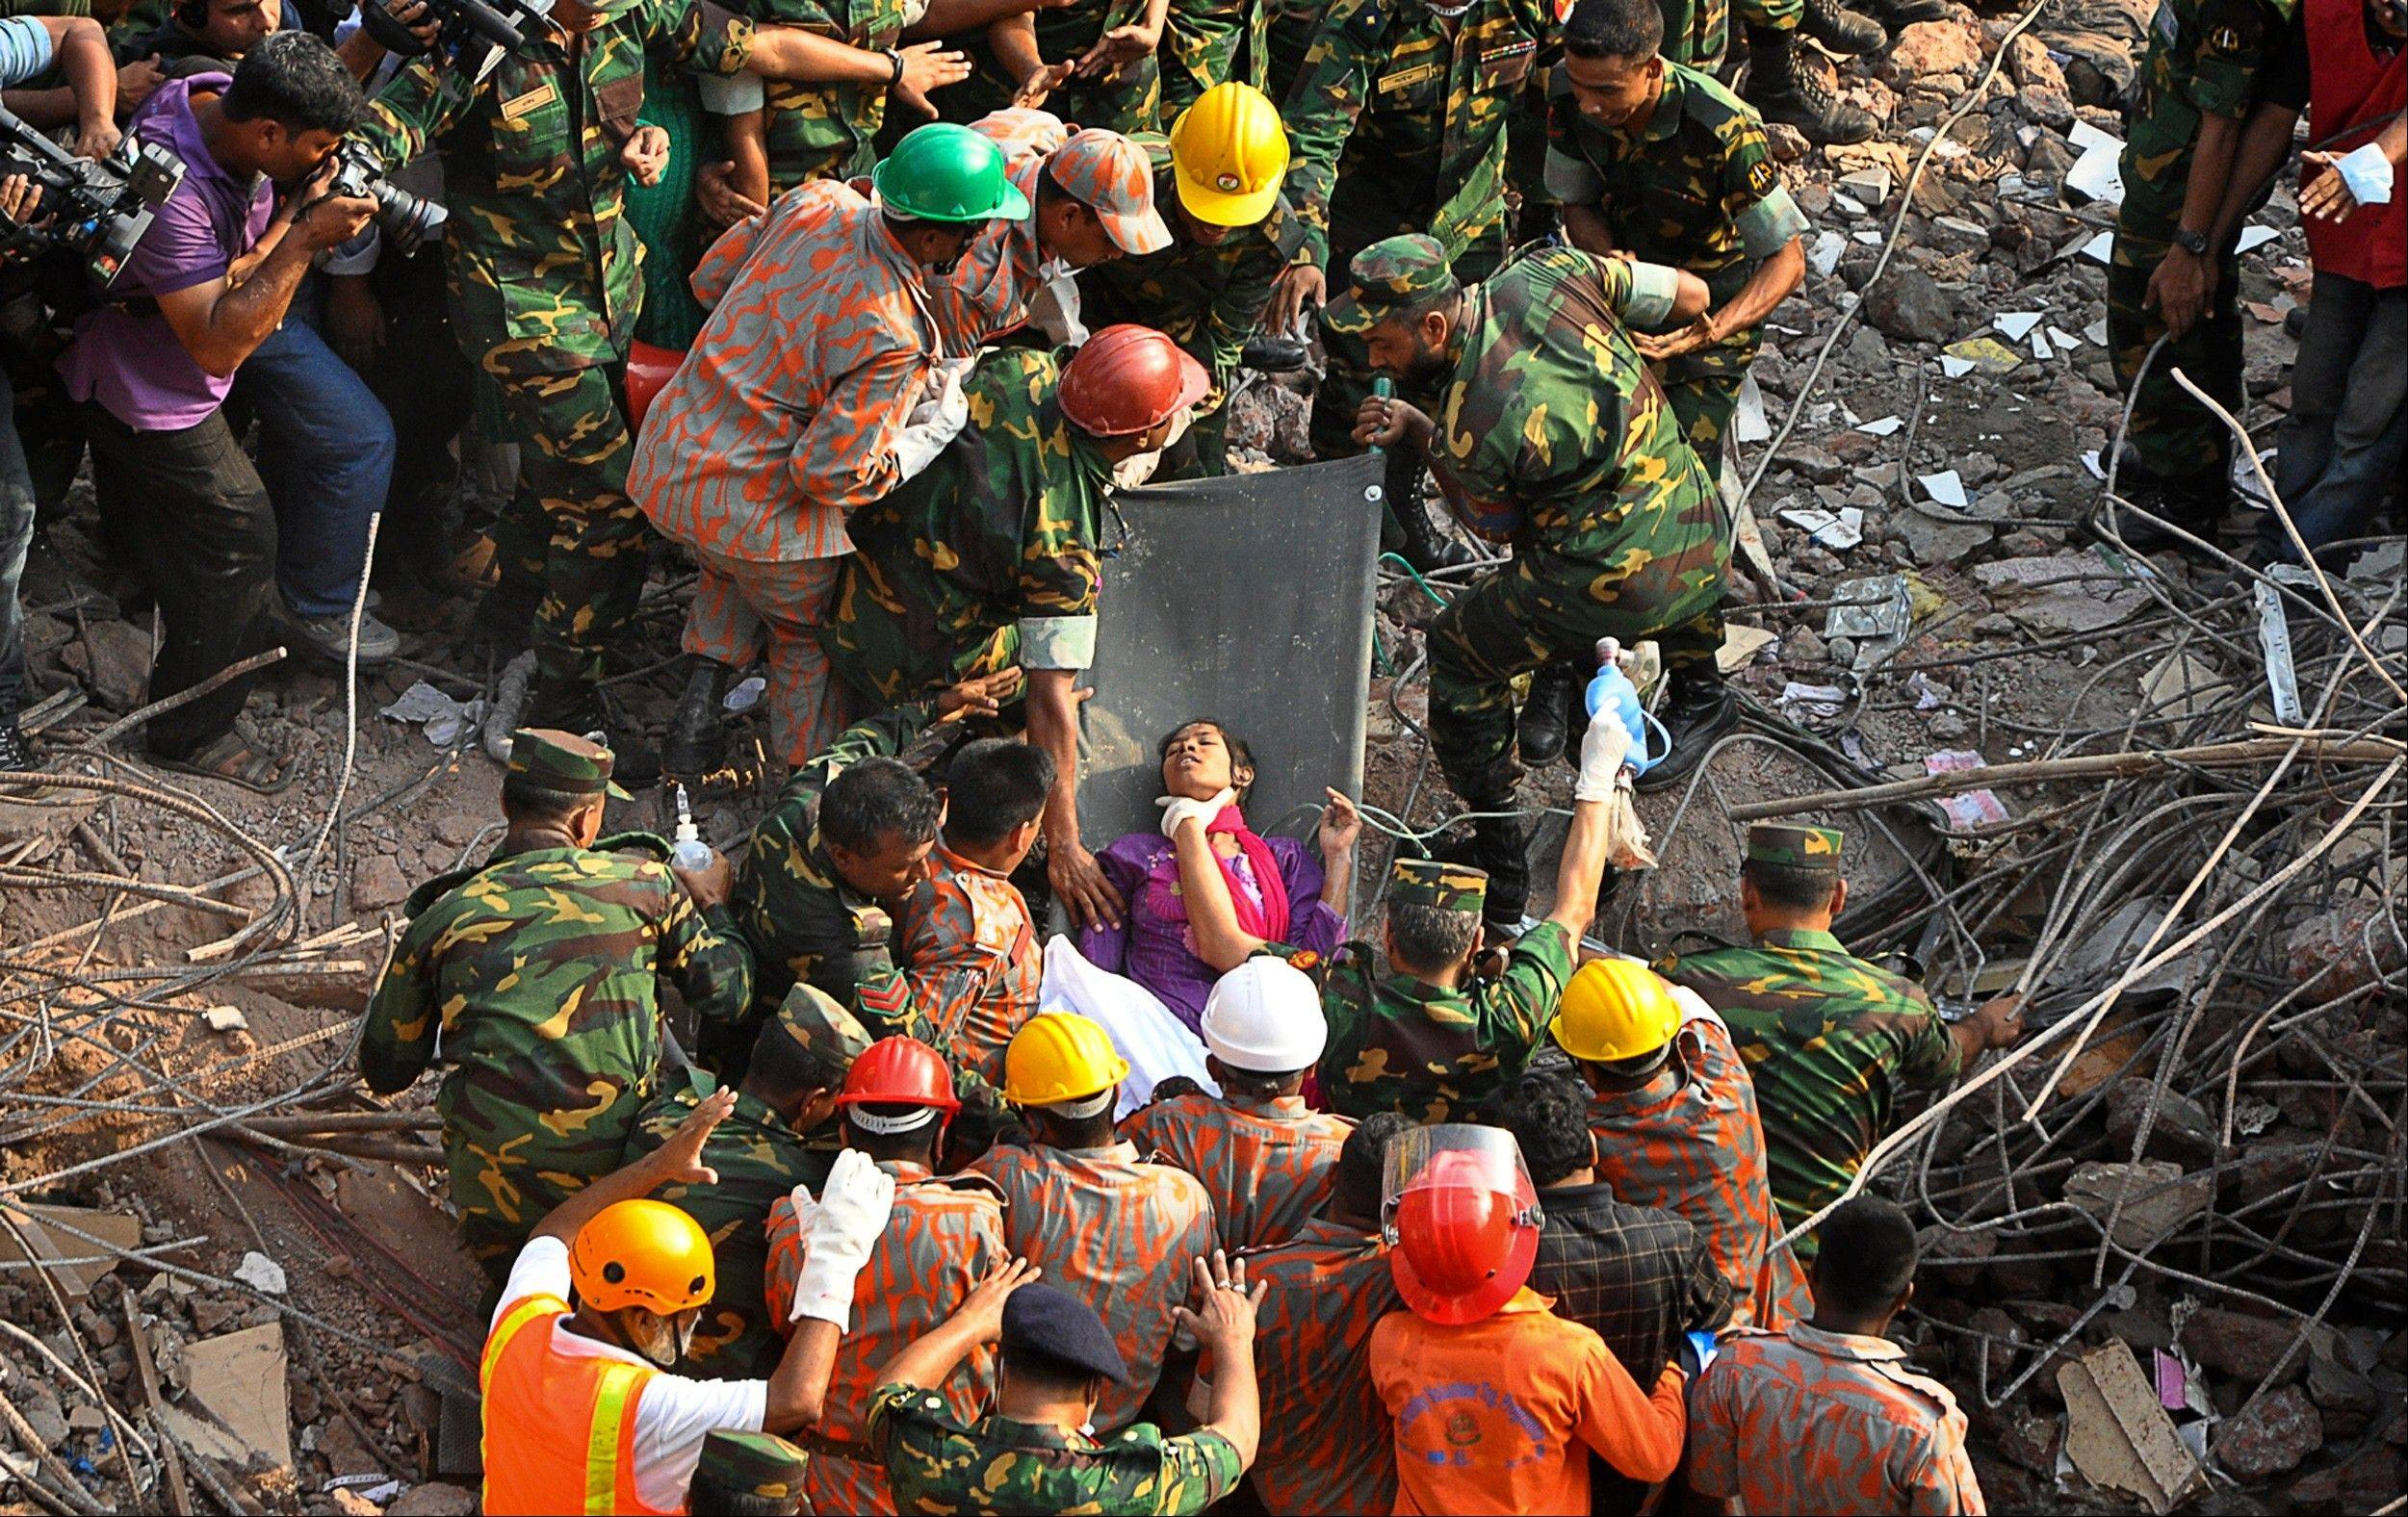 Bangladesh collapse survivor rescued after 17 days